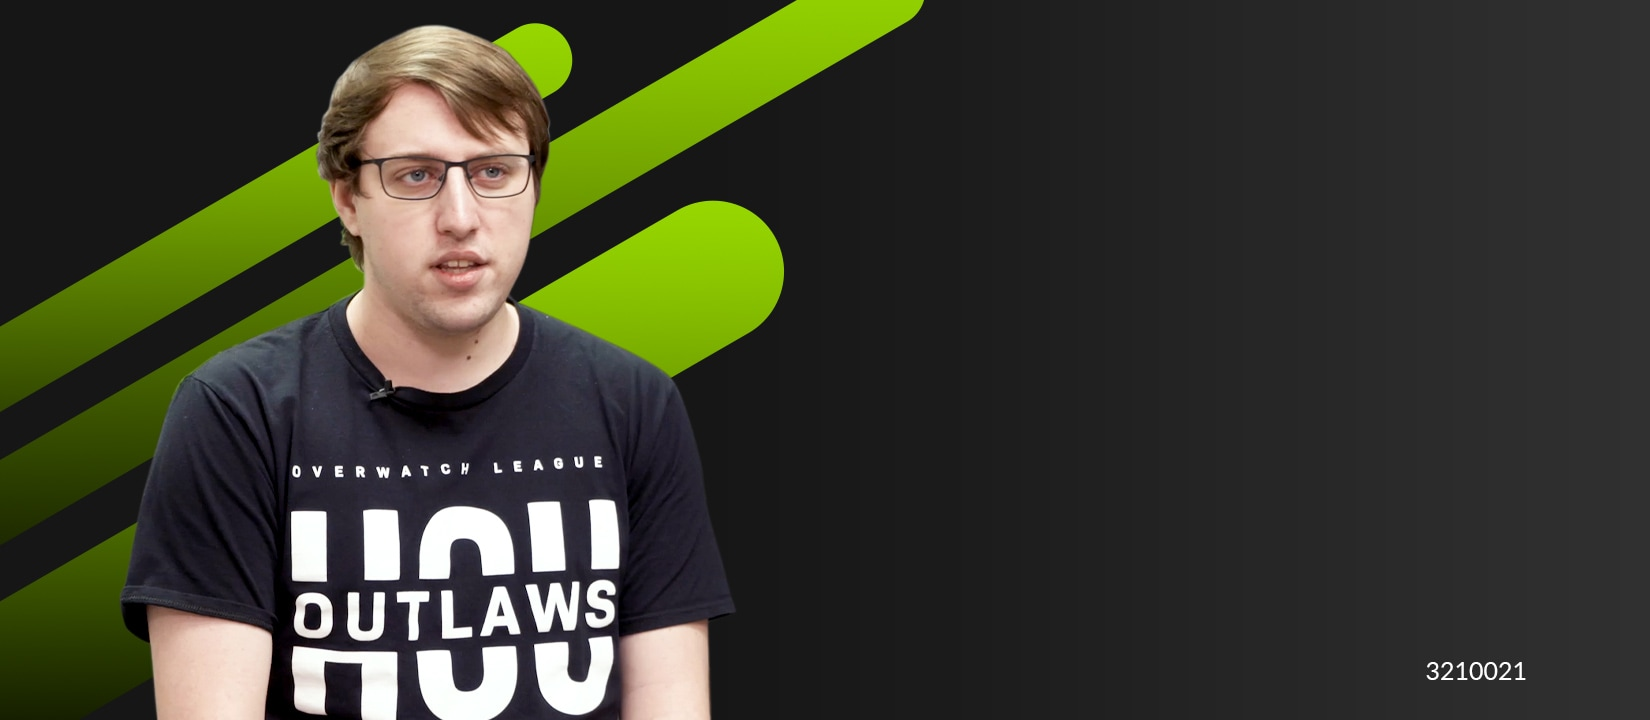 Image of Boink, support player for the Houston Outlaws overwatch team.